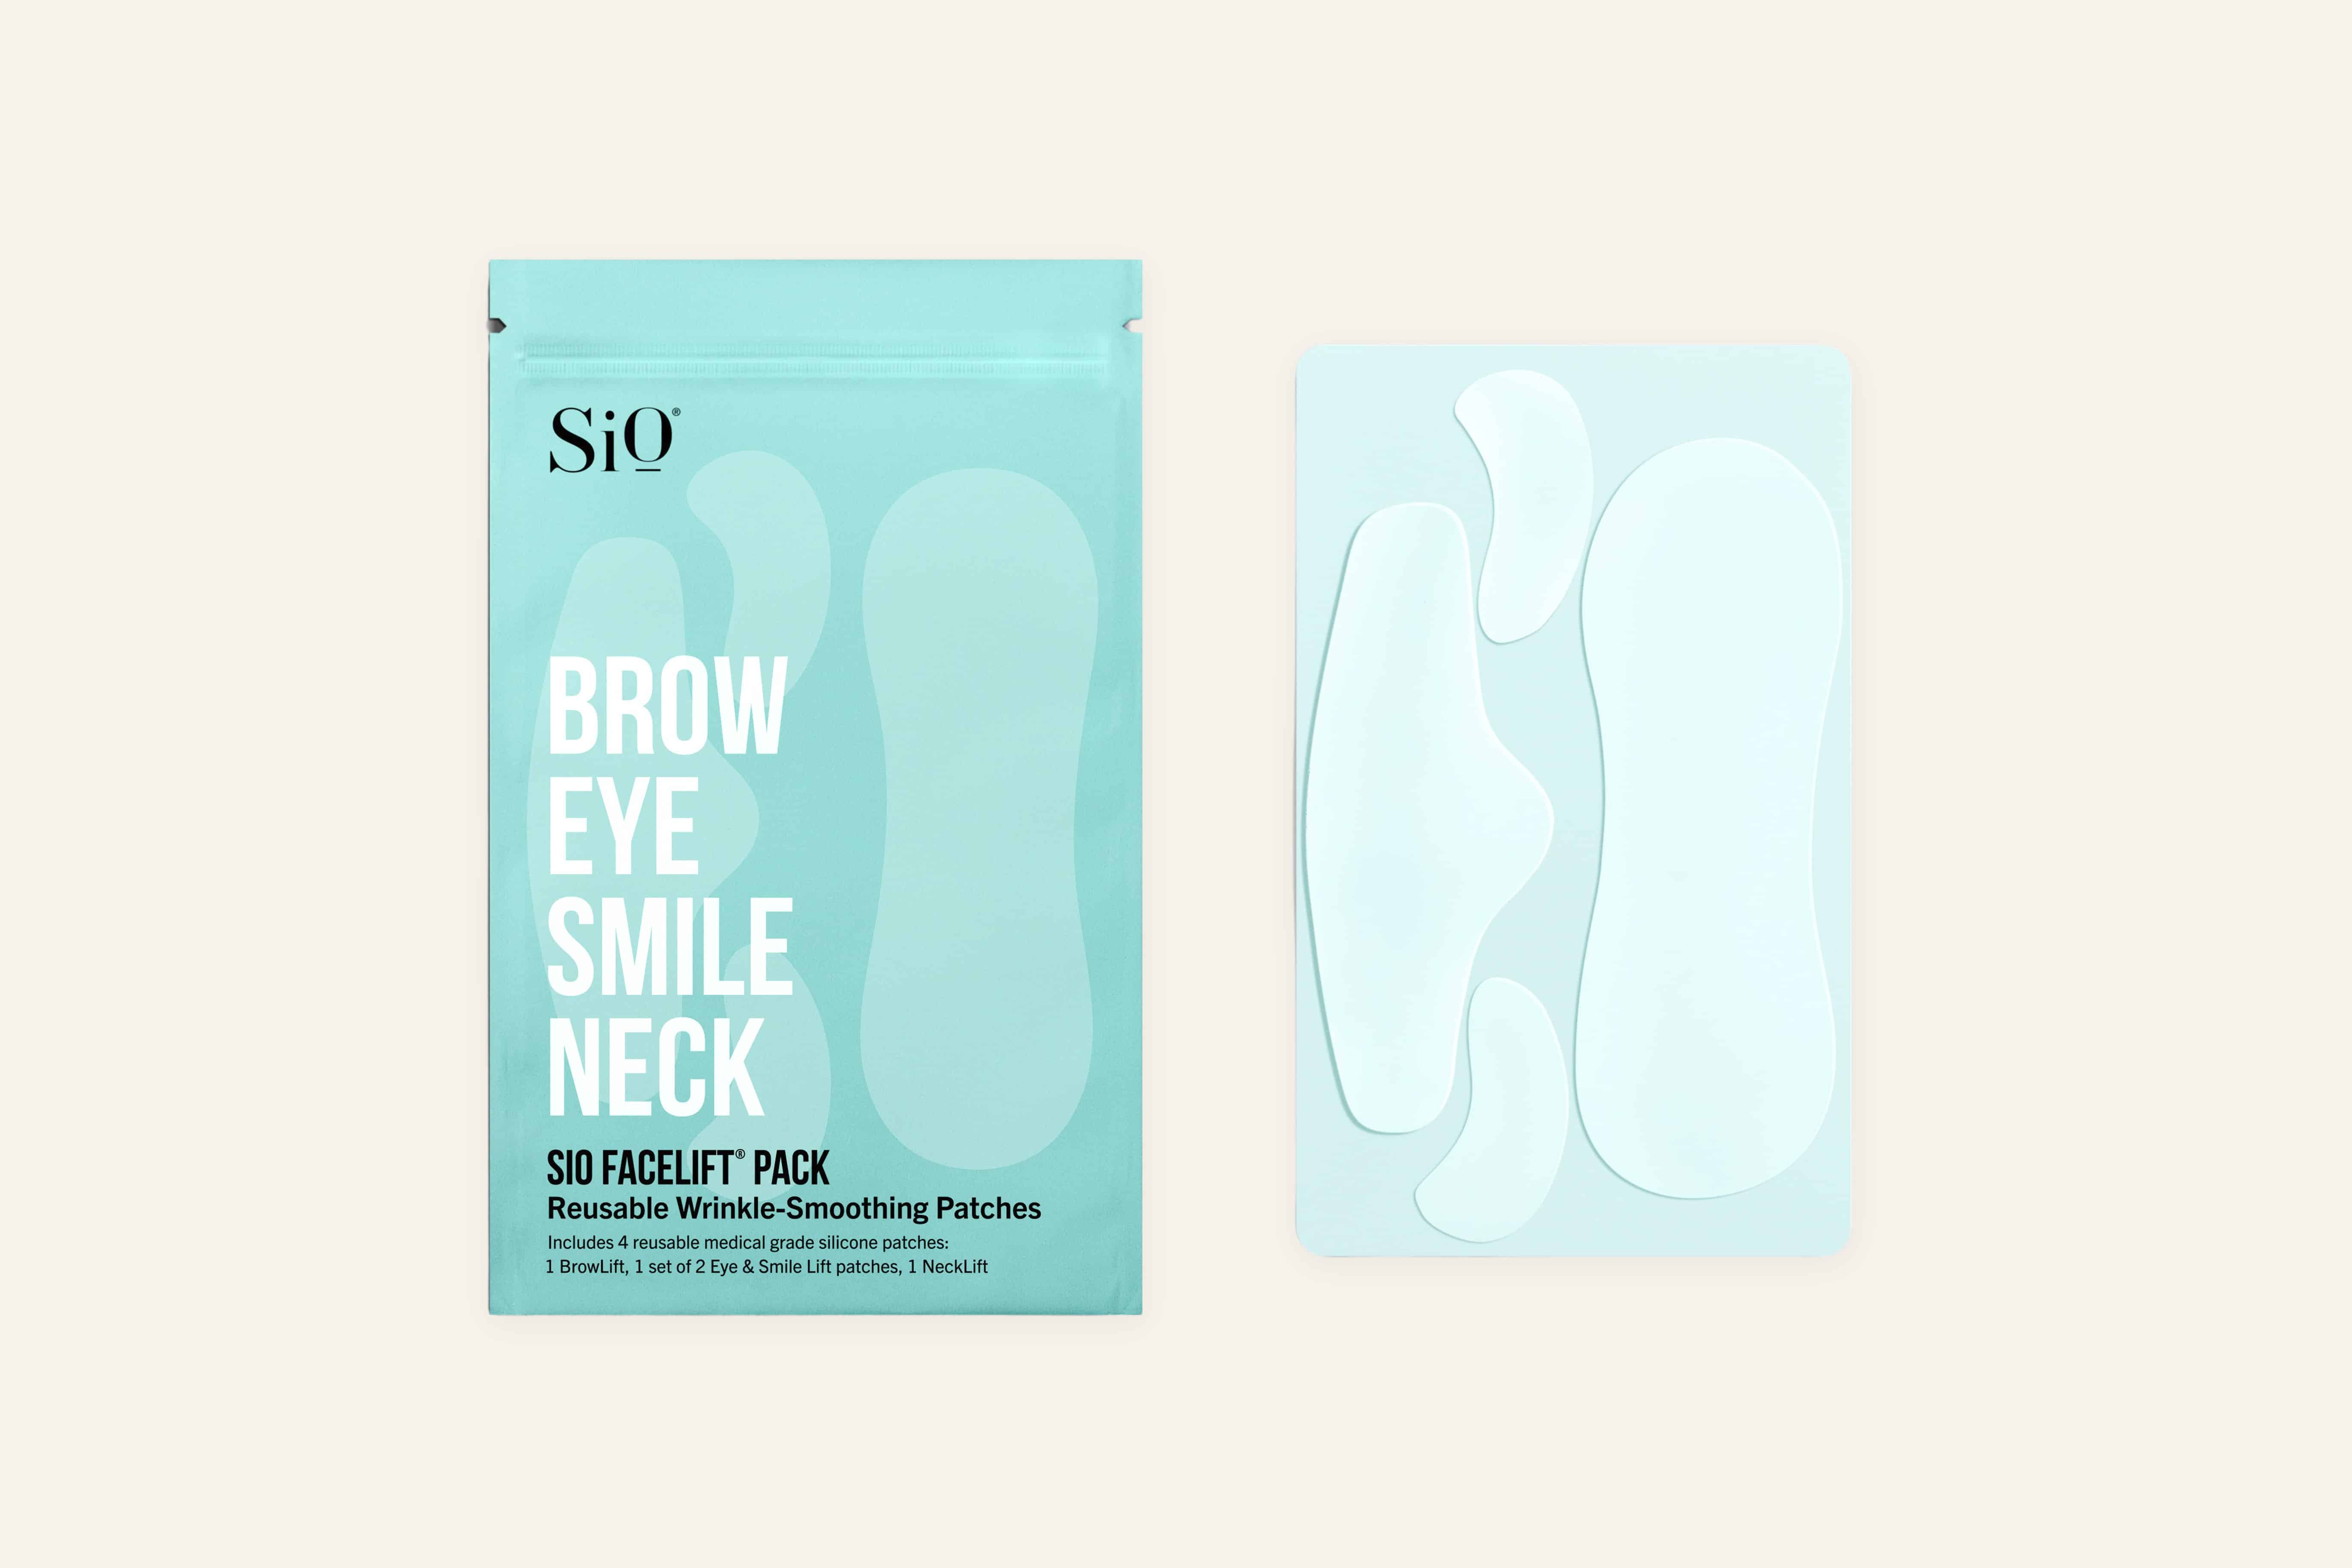 SiO patches are made of a medical-grade silicone that flattens the skin and prevents muscle movement to minimize the look of fine lines and wrinkles.